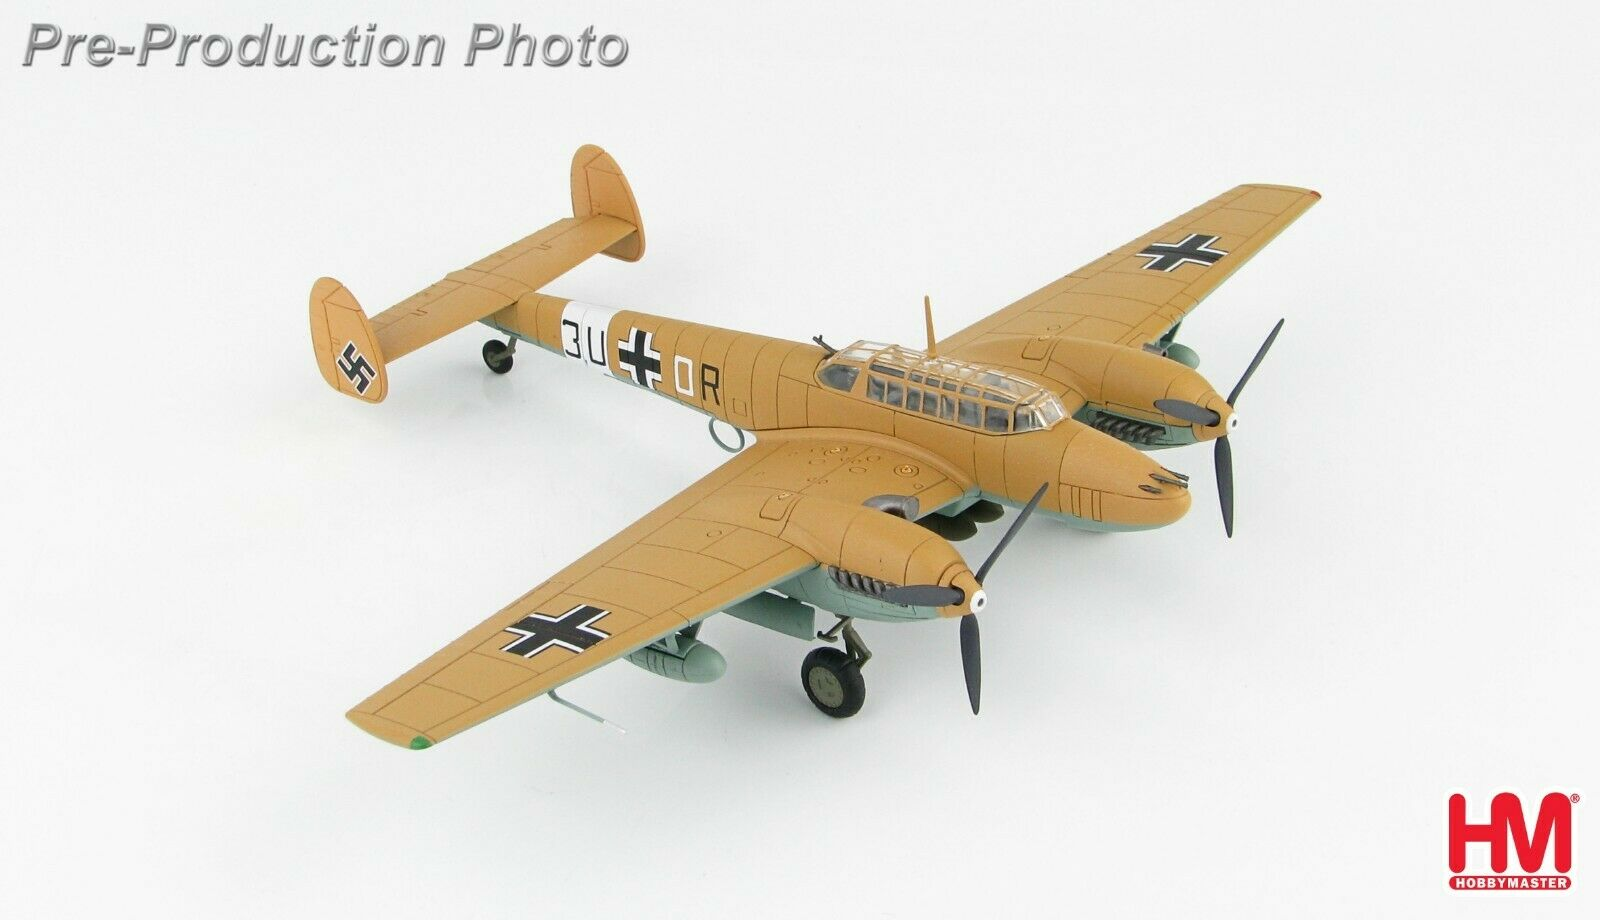 Chasseur Allemand Bf.110E -7 Tropical, Lybie 1942 - HOBBY MASTER 1  72 R 675533;f. HA1815